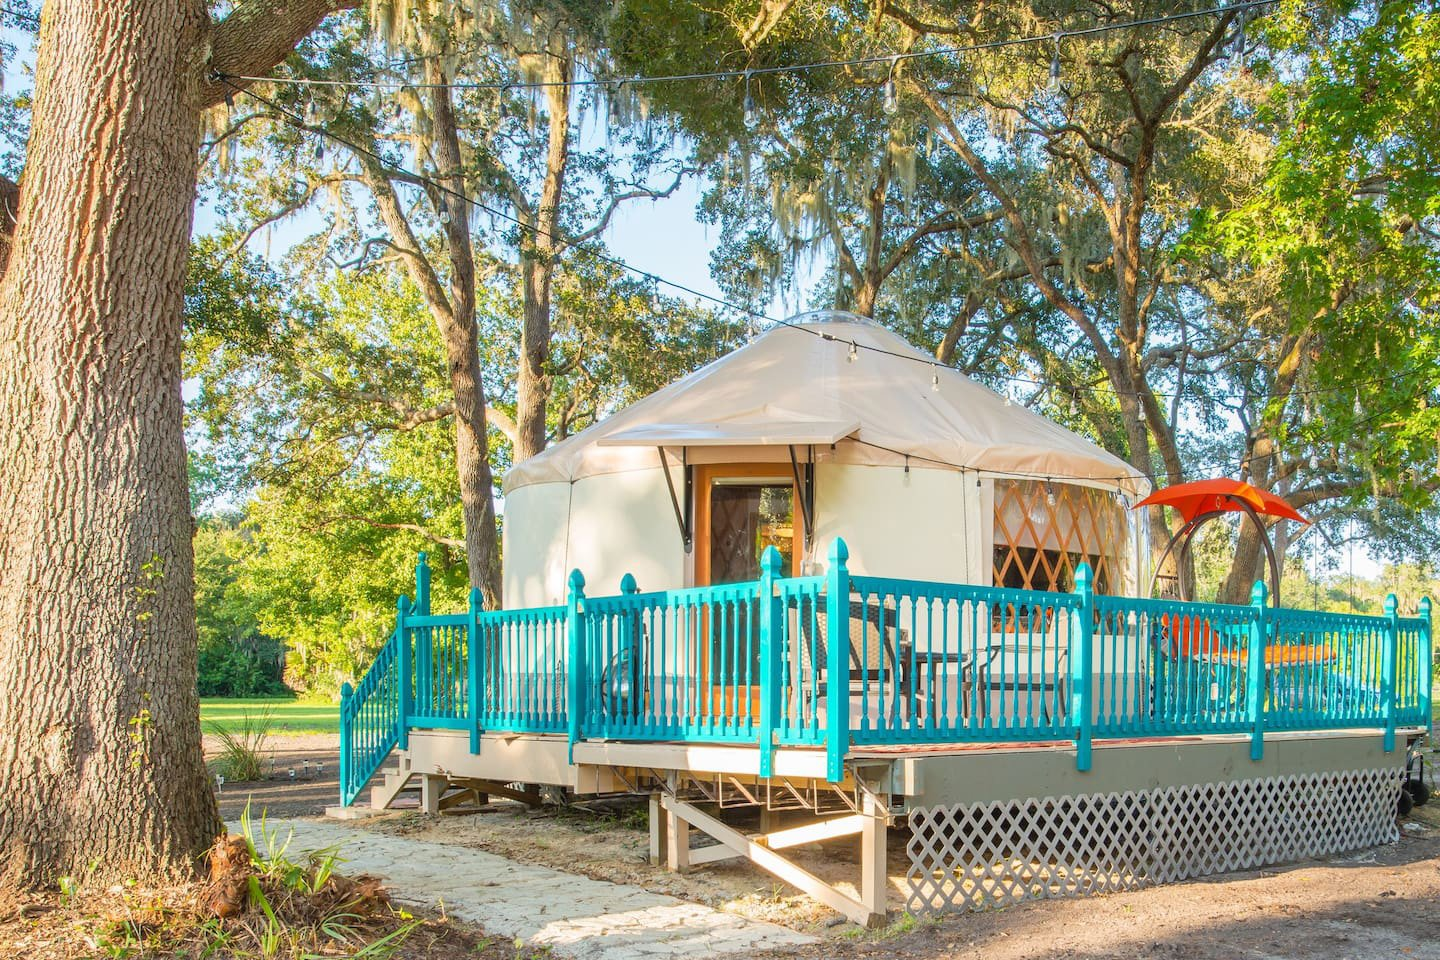 The Yurt - Geneva, FL Lodging | Danville Bed and Breakfast